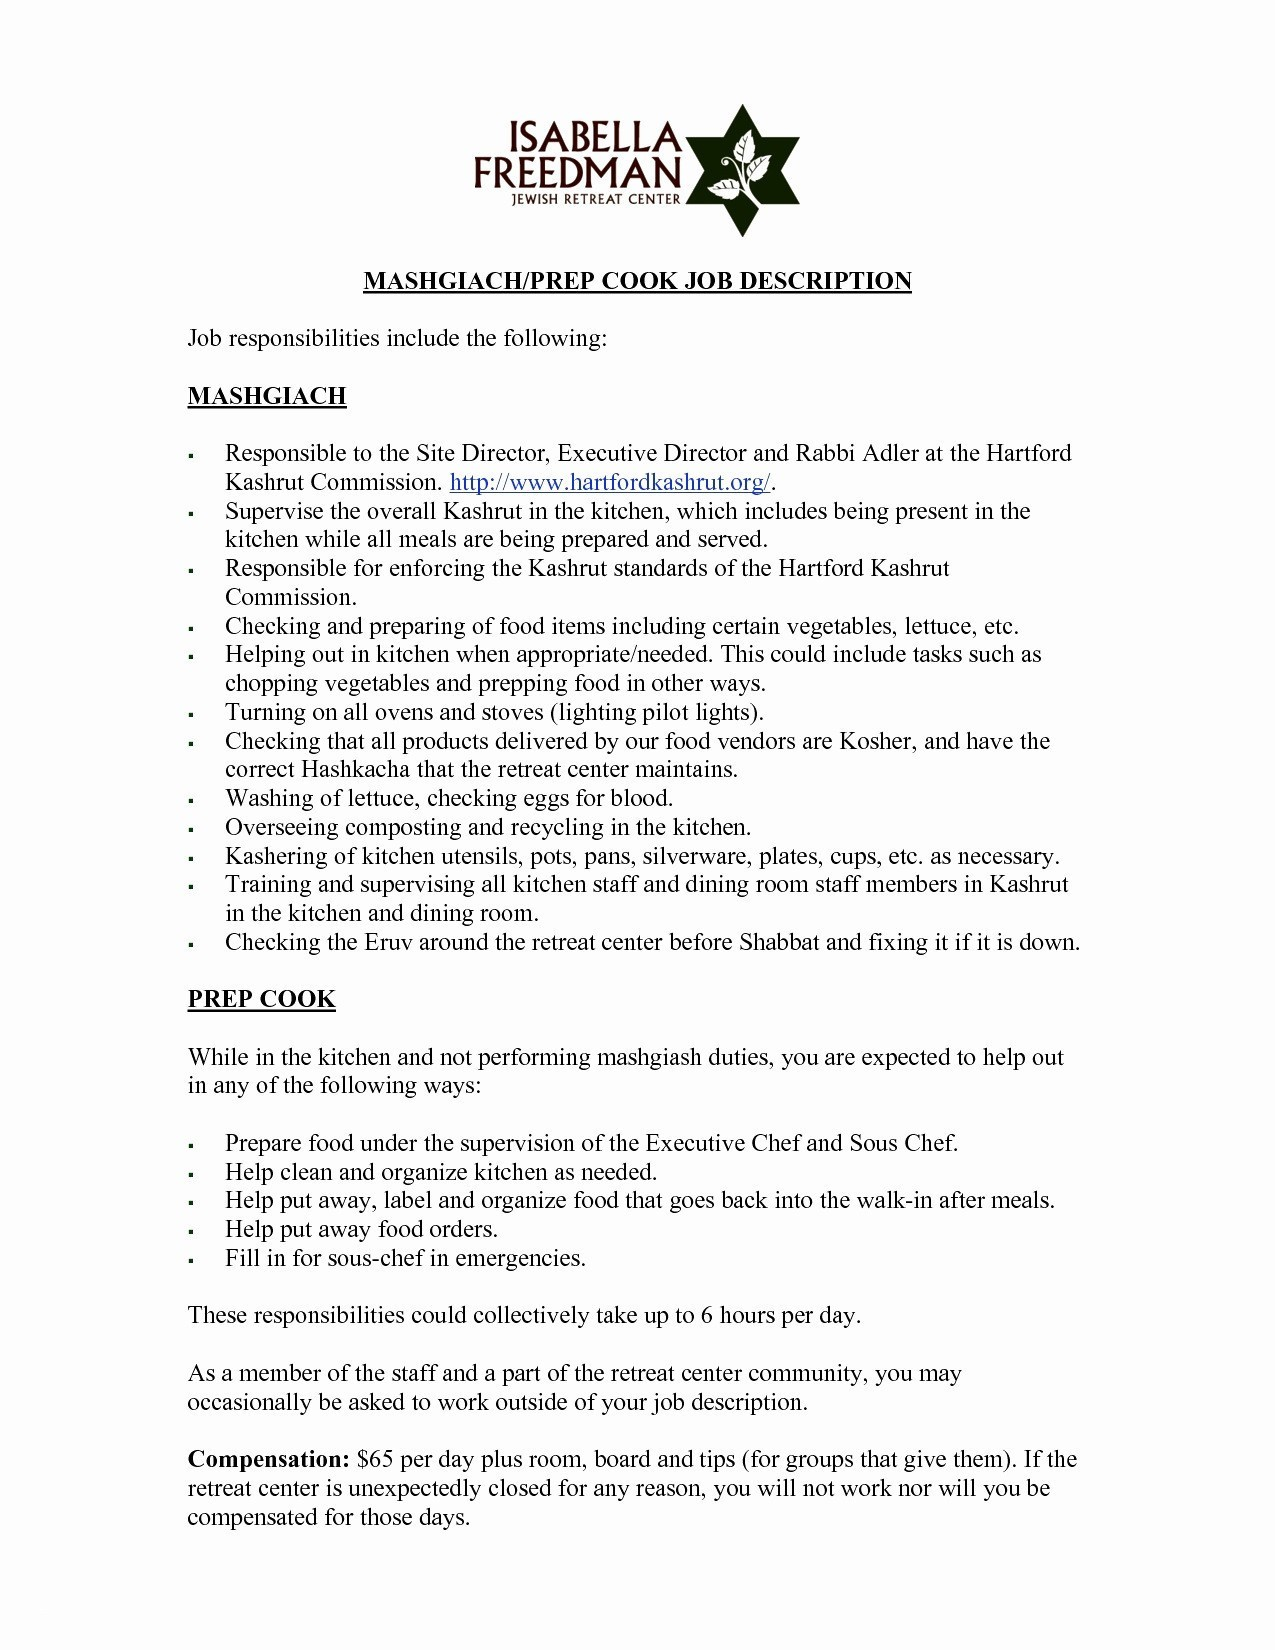 Cover Letter For Library Job Beautiful Biodata Covering Letter Format 40 Lovely Cover Letter for